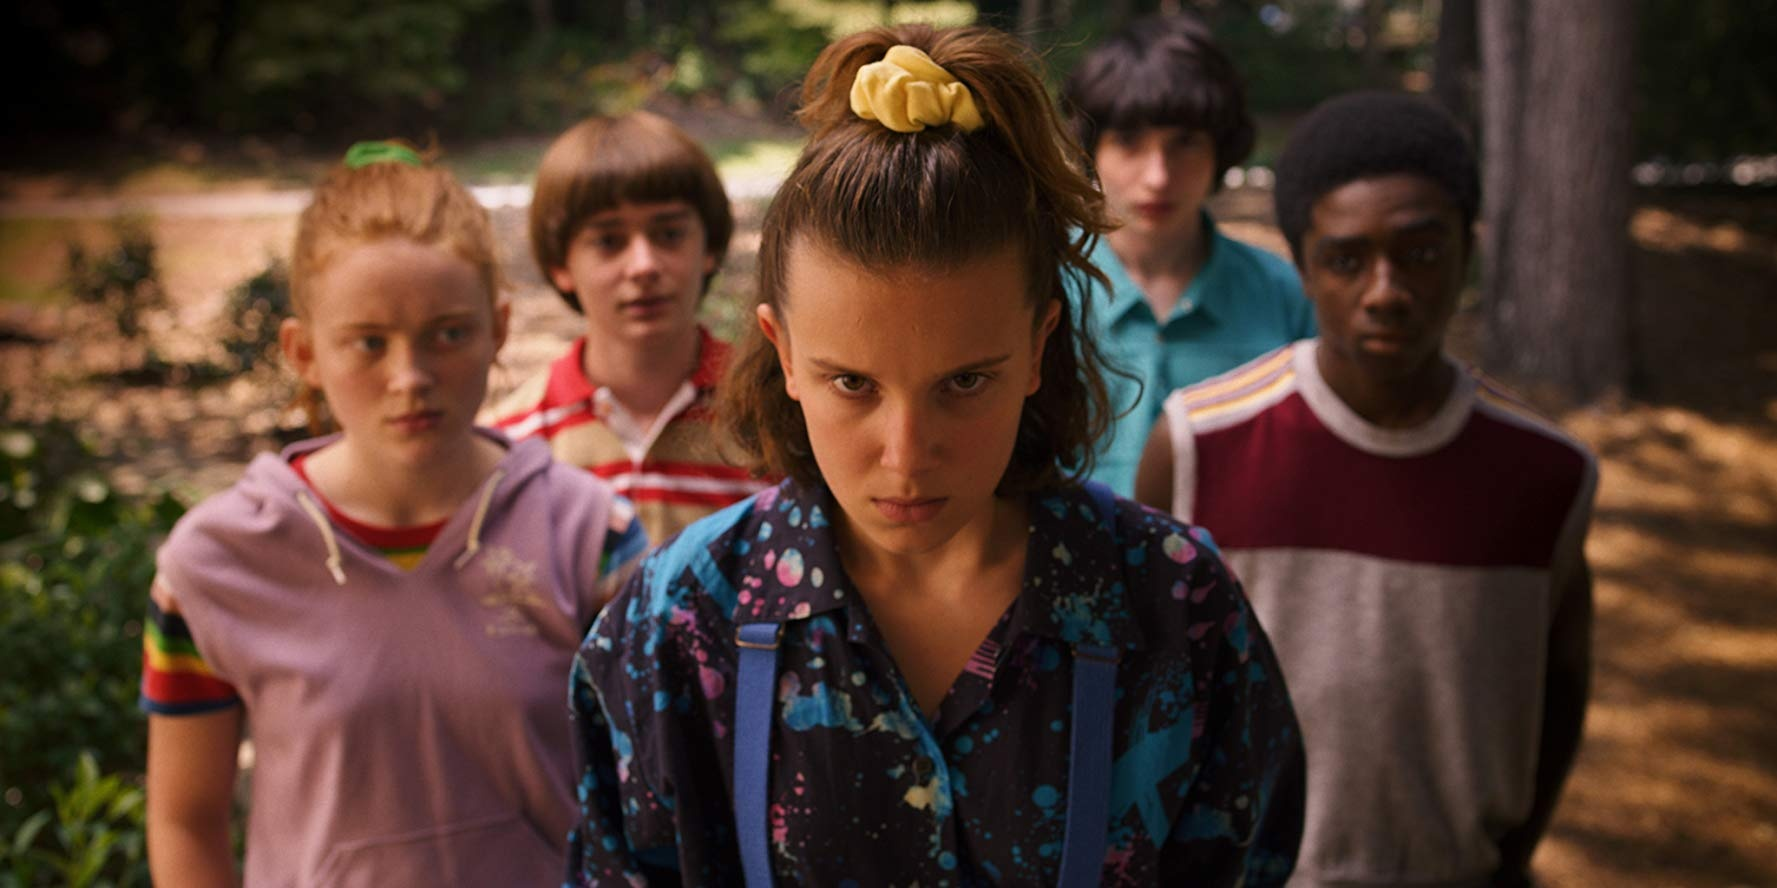 Love 'Stranger Things'? Audition for These Netflix, Supernatural + Horror Gigs